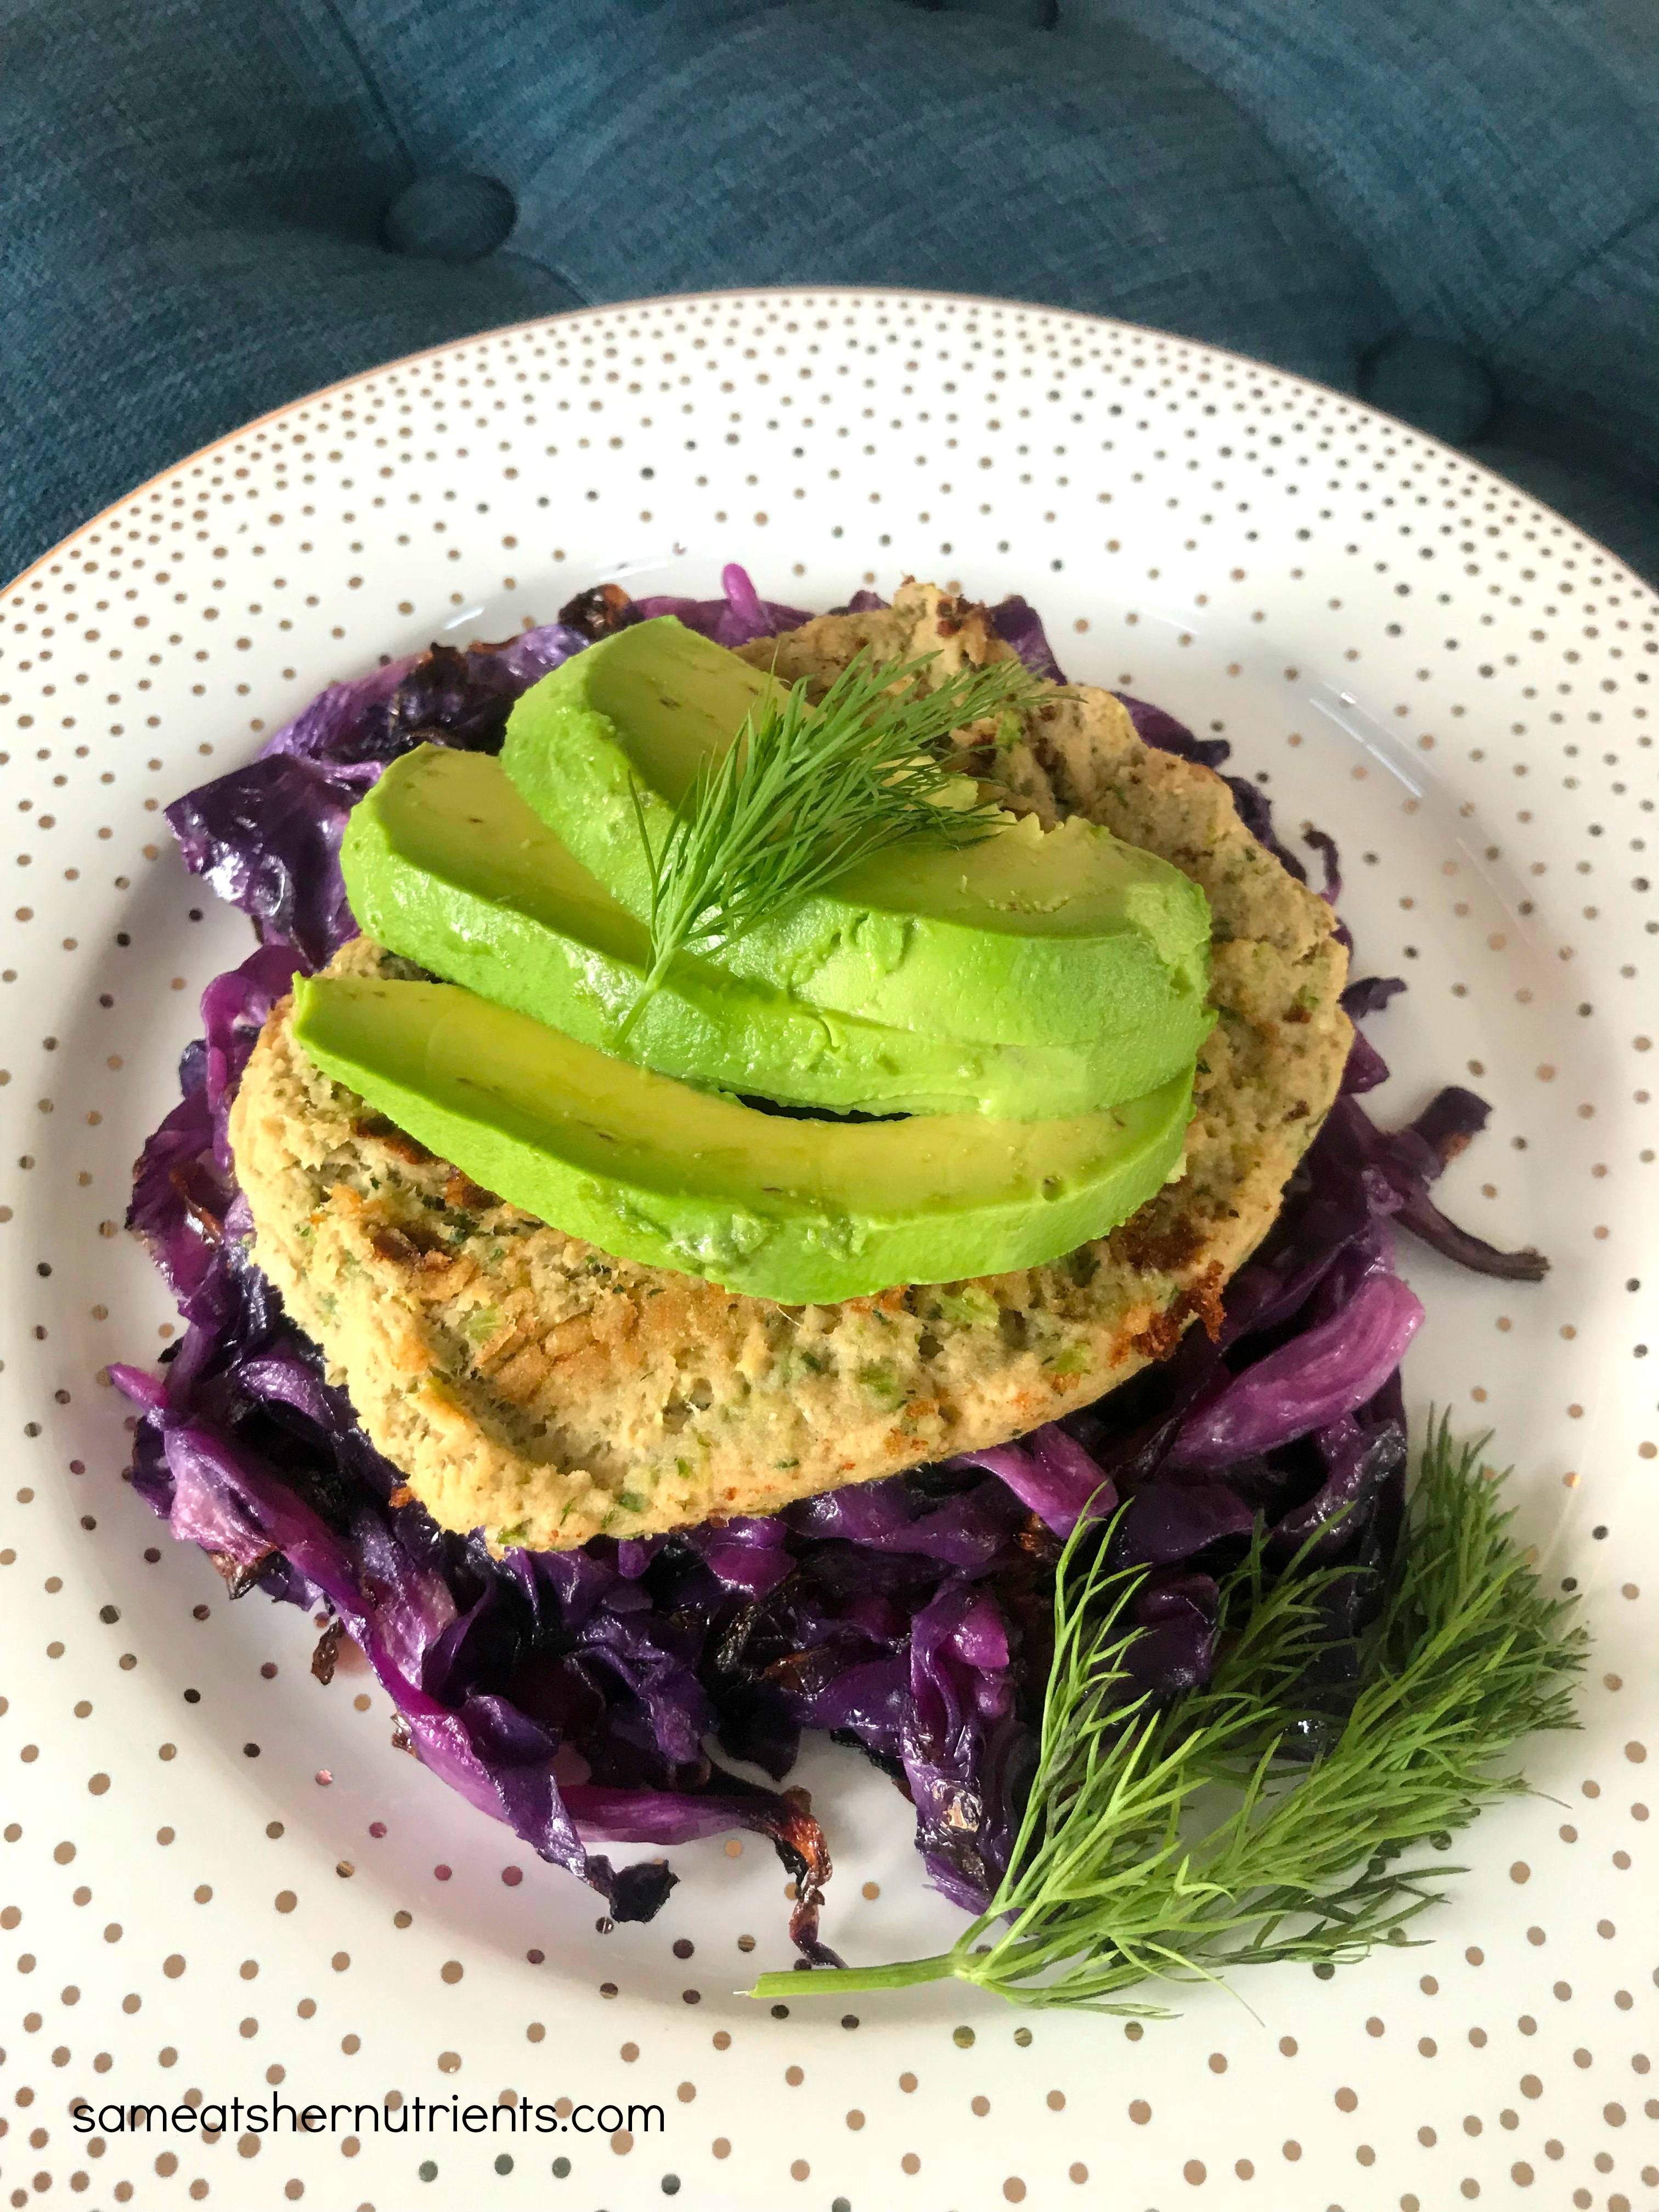 Salmon Burger with Avocado on Roasted Cabbage